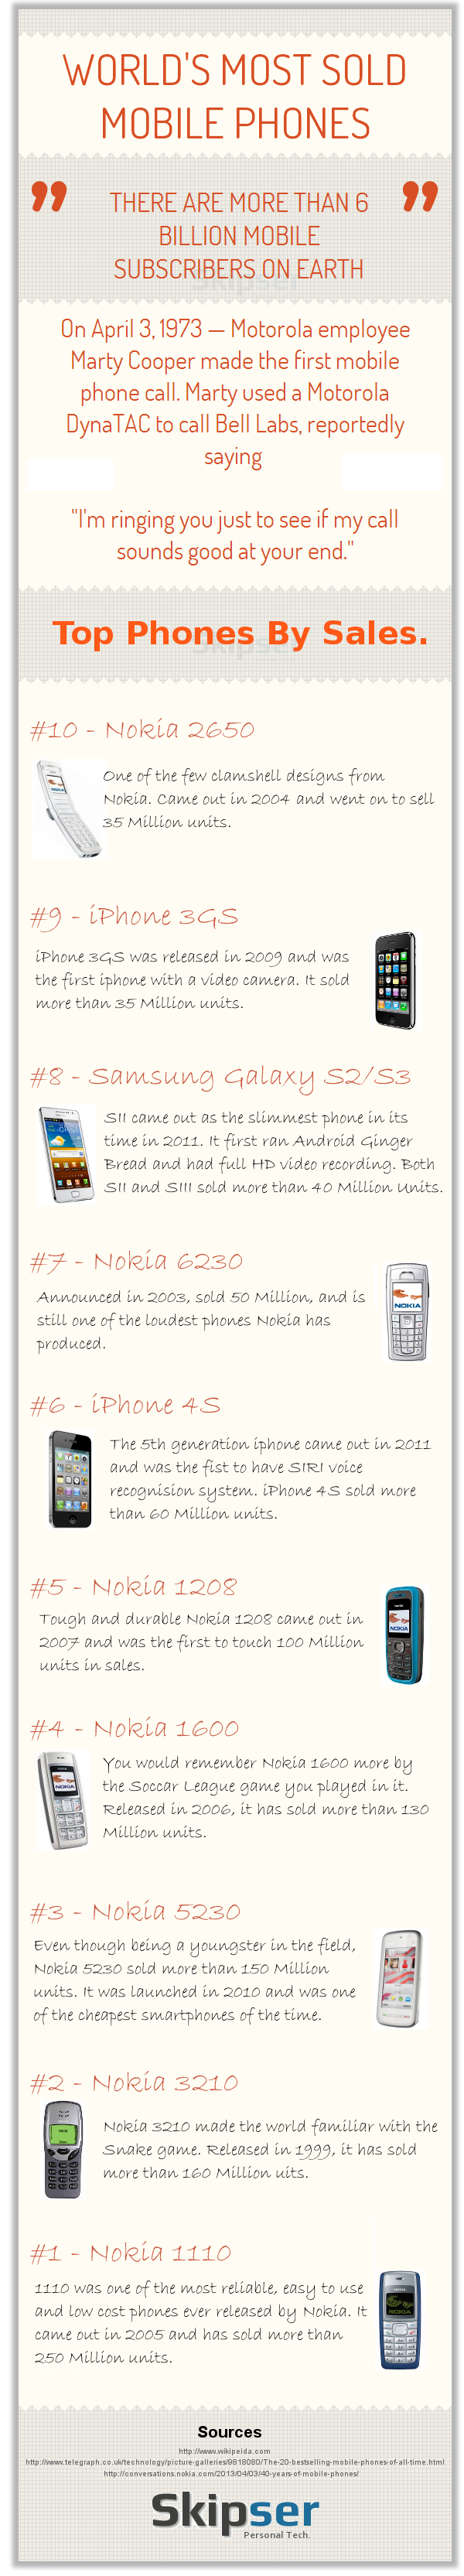 Worlds 10 most sold mobile phones.